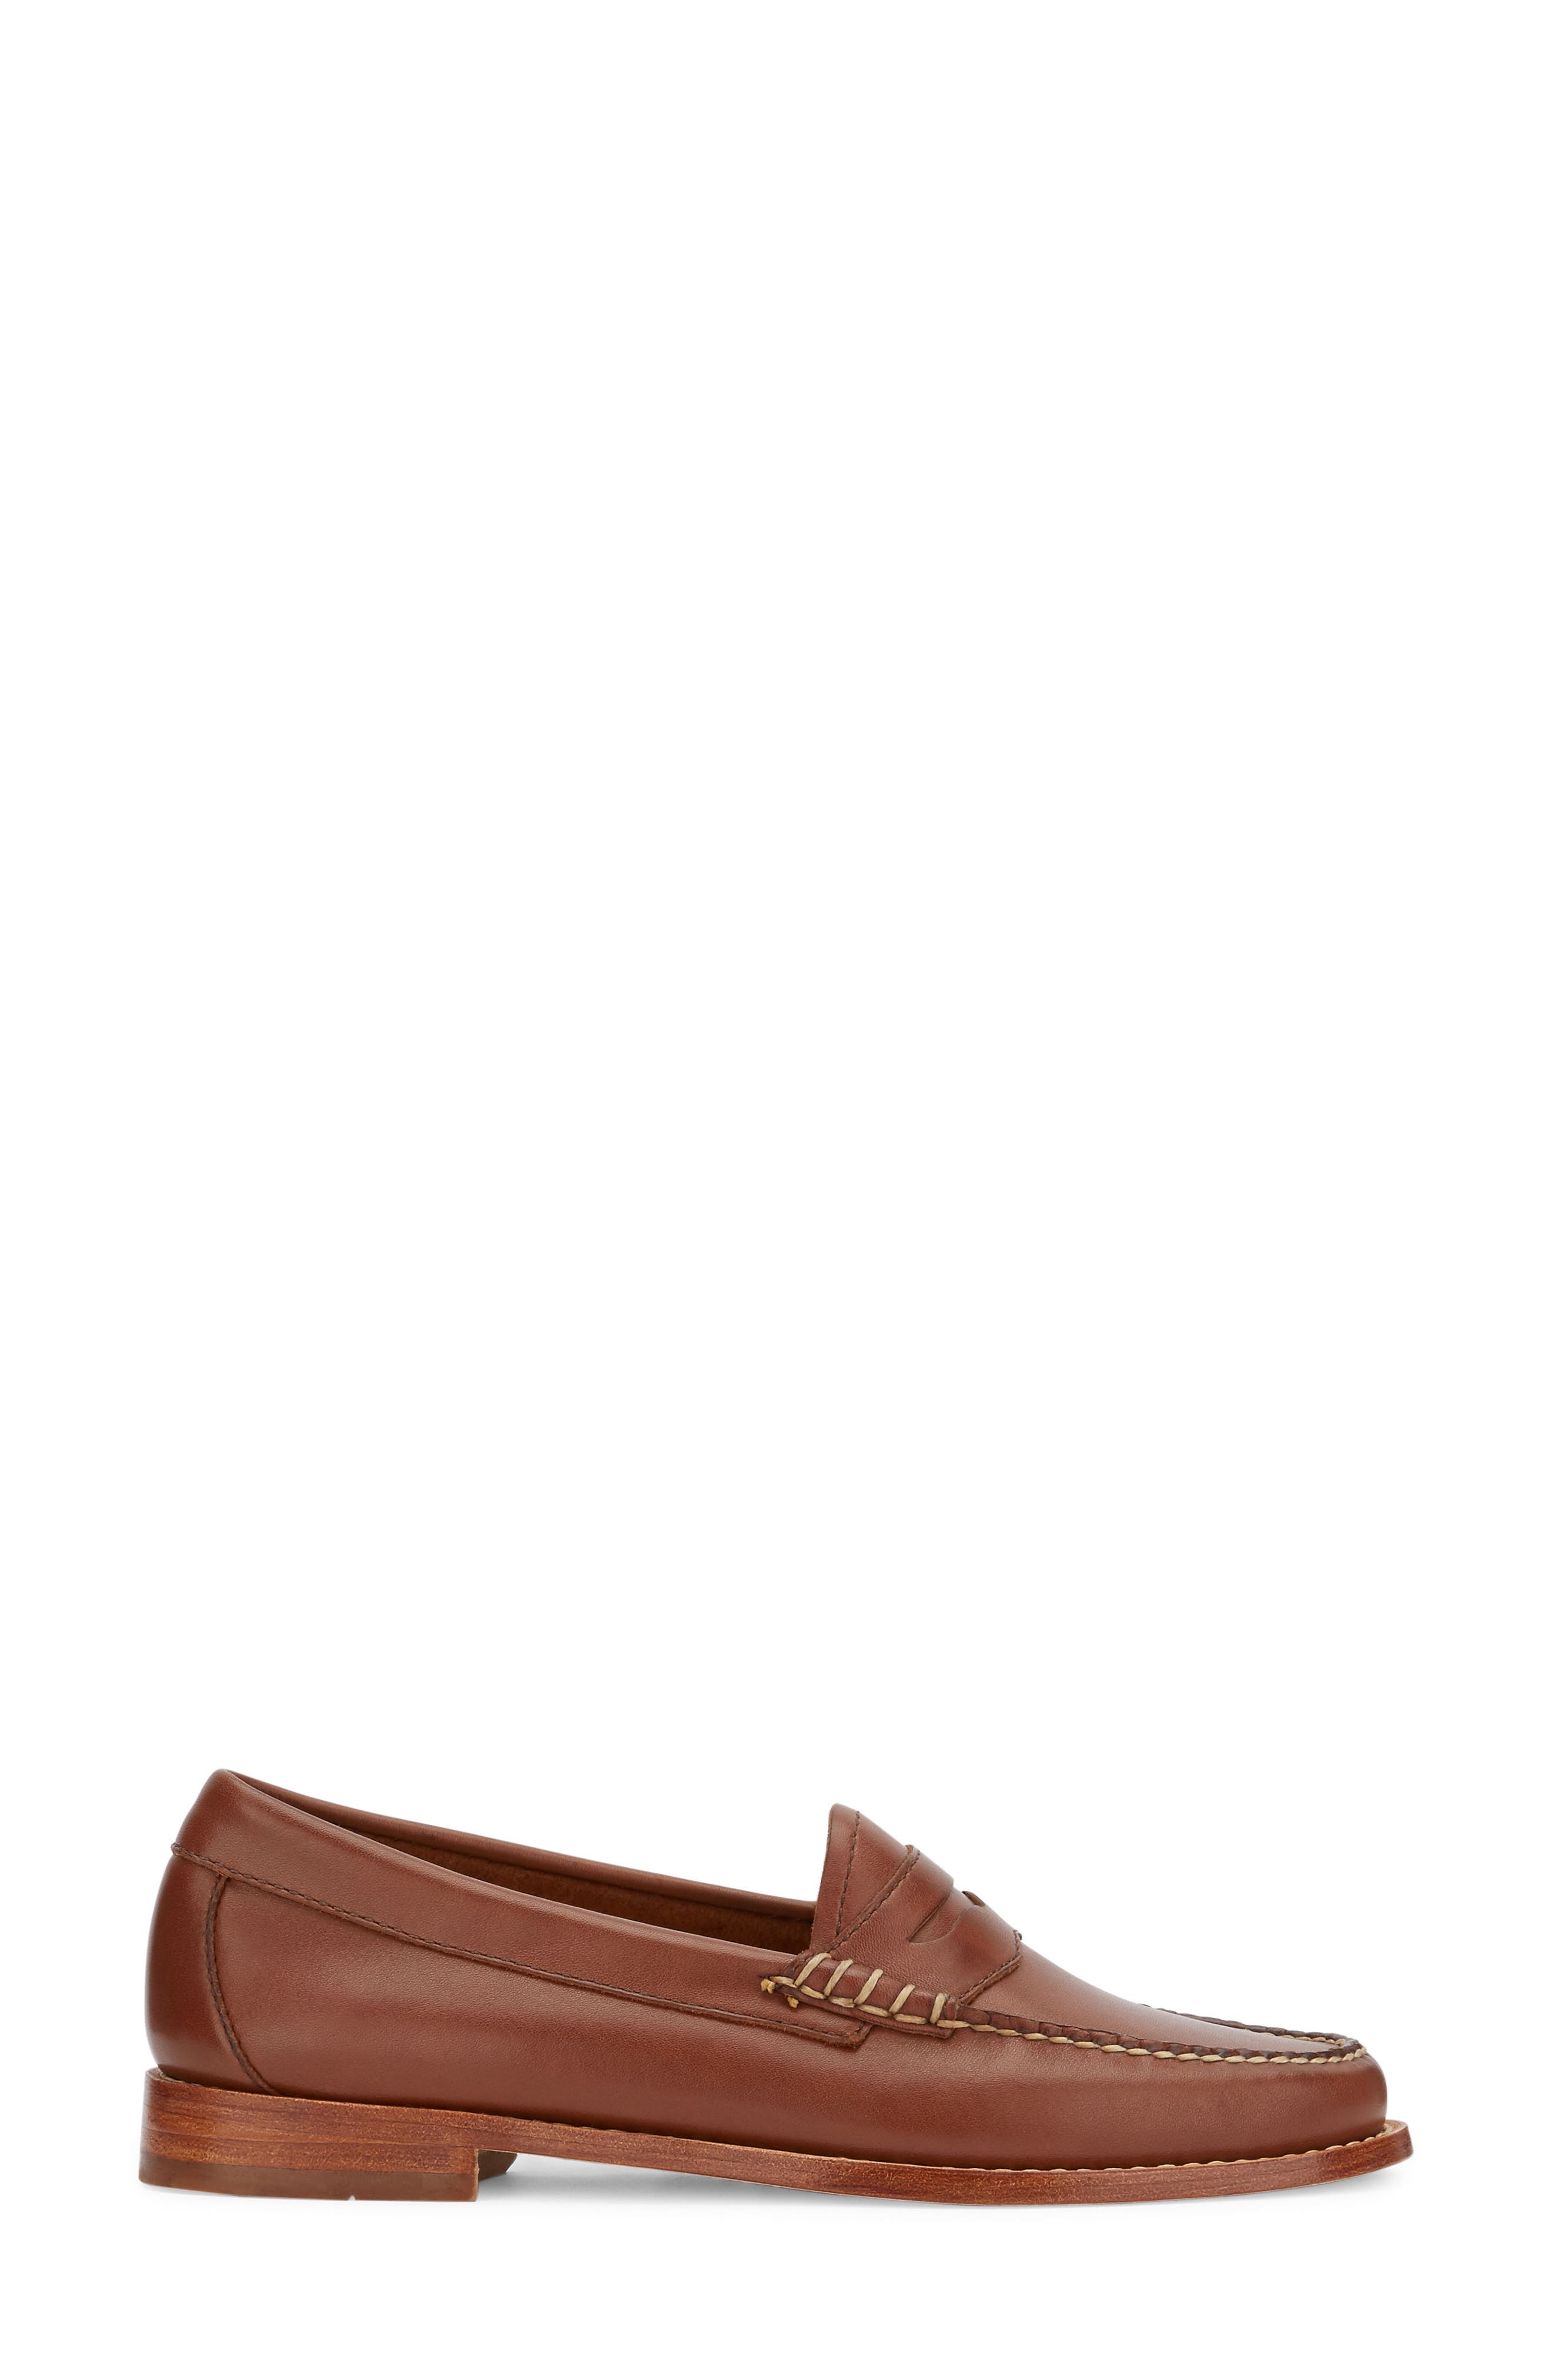 'Whitney' Loafer,                             Alternate thumbnail 2, color,                             COGNAC LEATHER